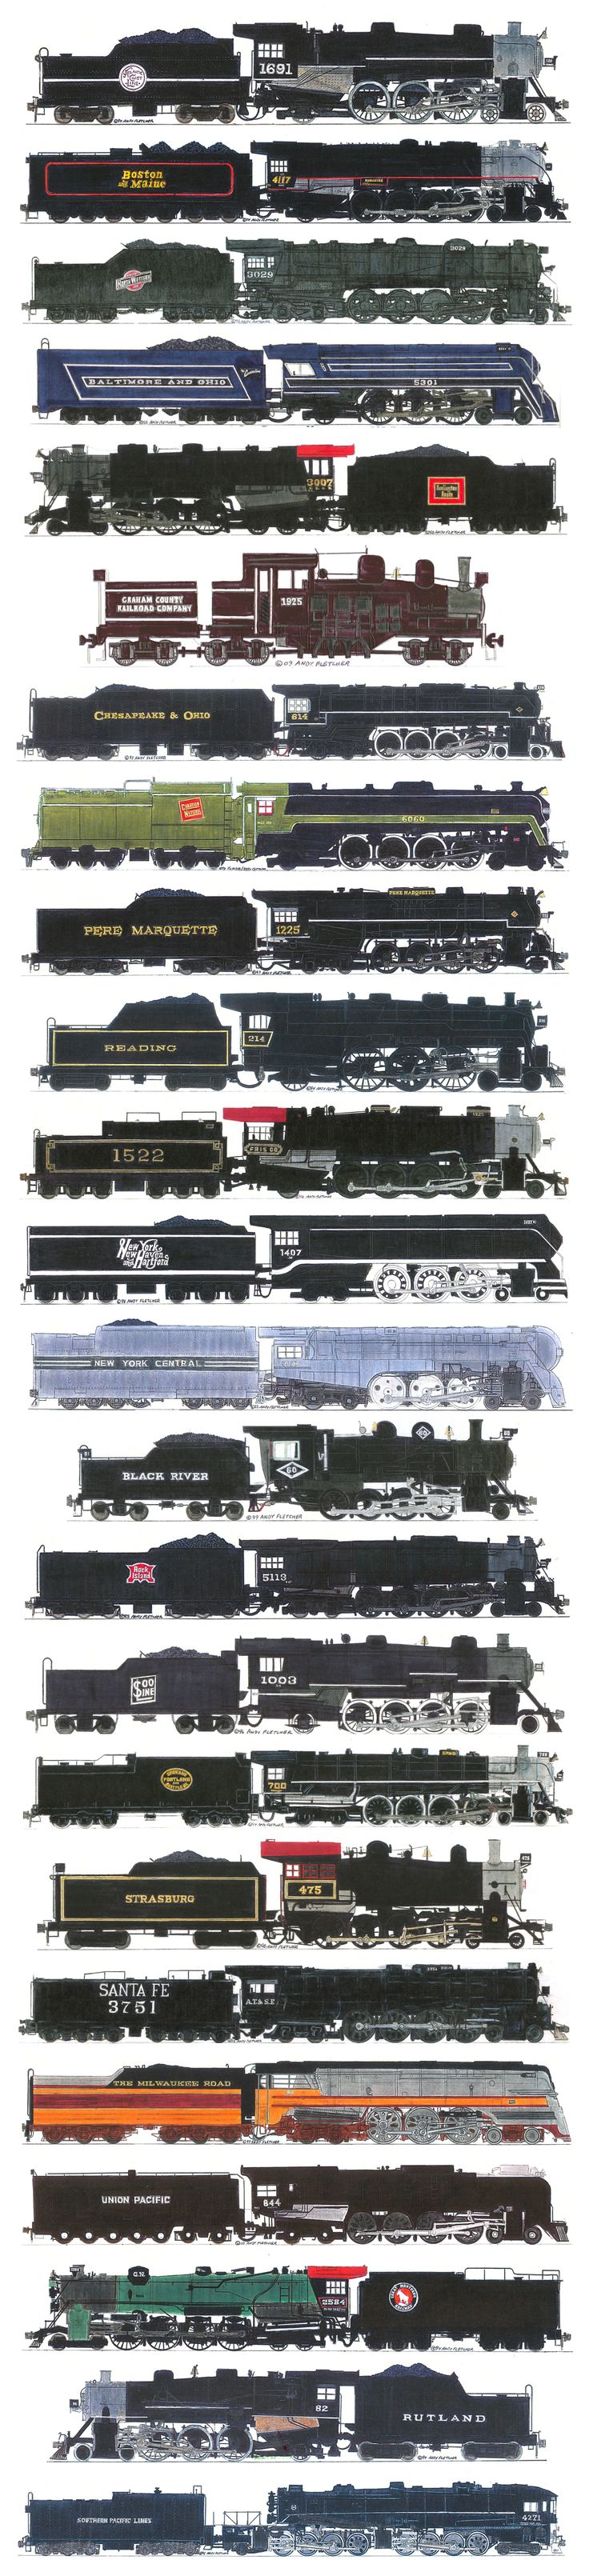 Steam Engine Drawings                                                                                                                                                     More